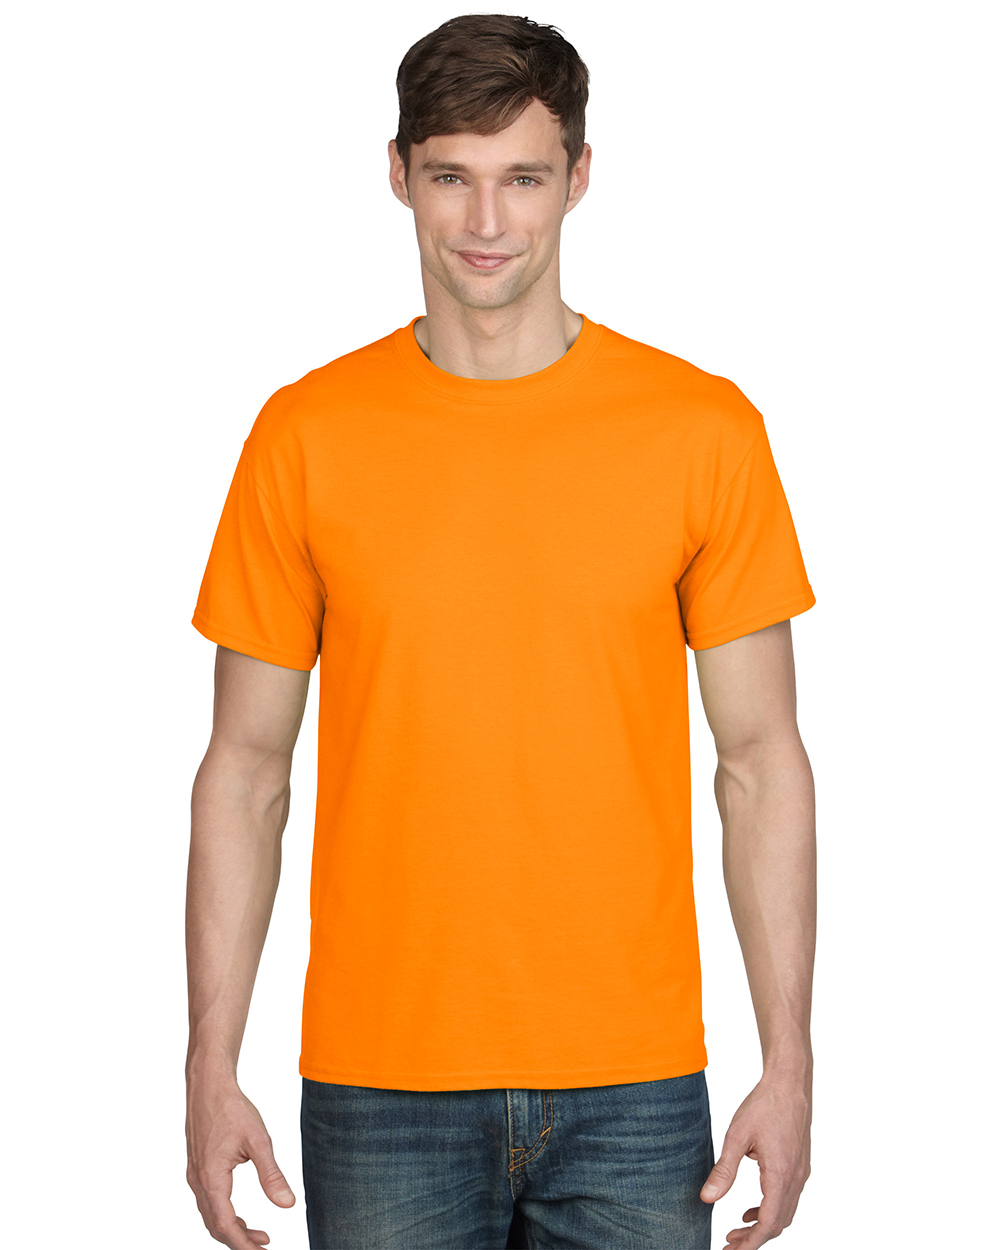 Gildan 8000      DryBlend™    Classic Fit Adult T-Shirt    5.6 oz. 50% Cotton/50% DryBlend Polyester